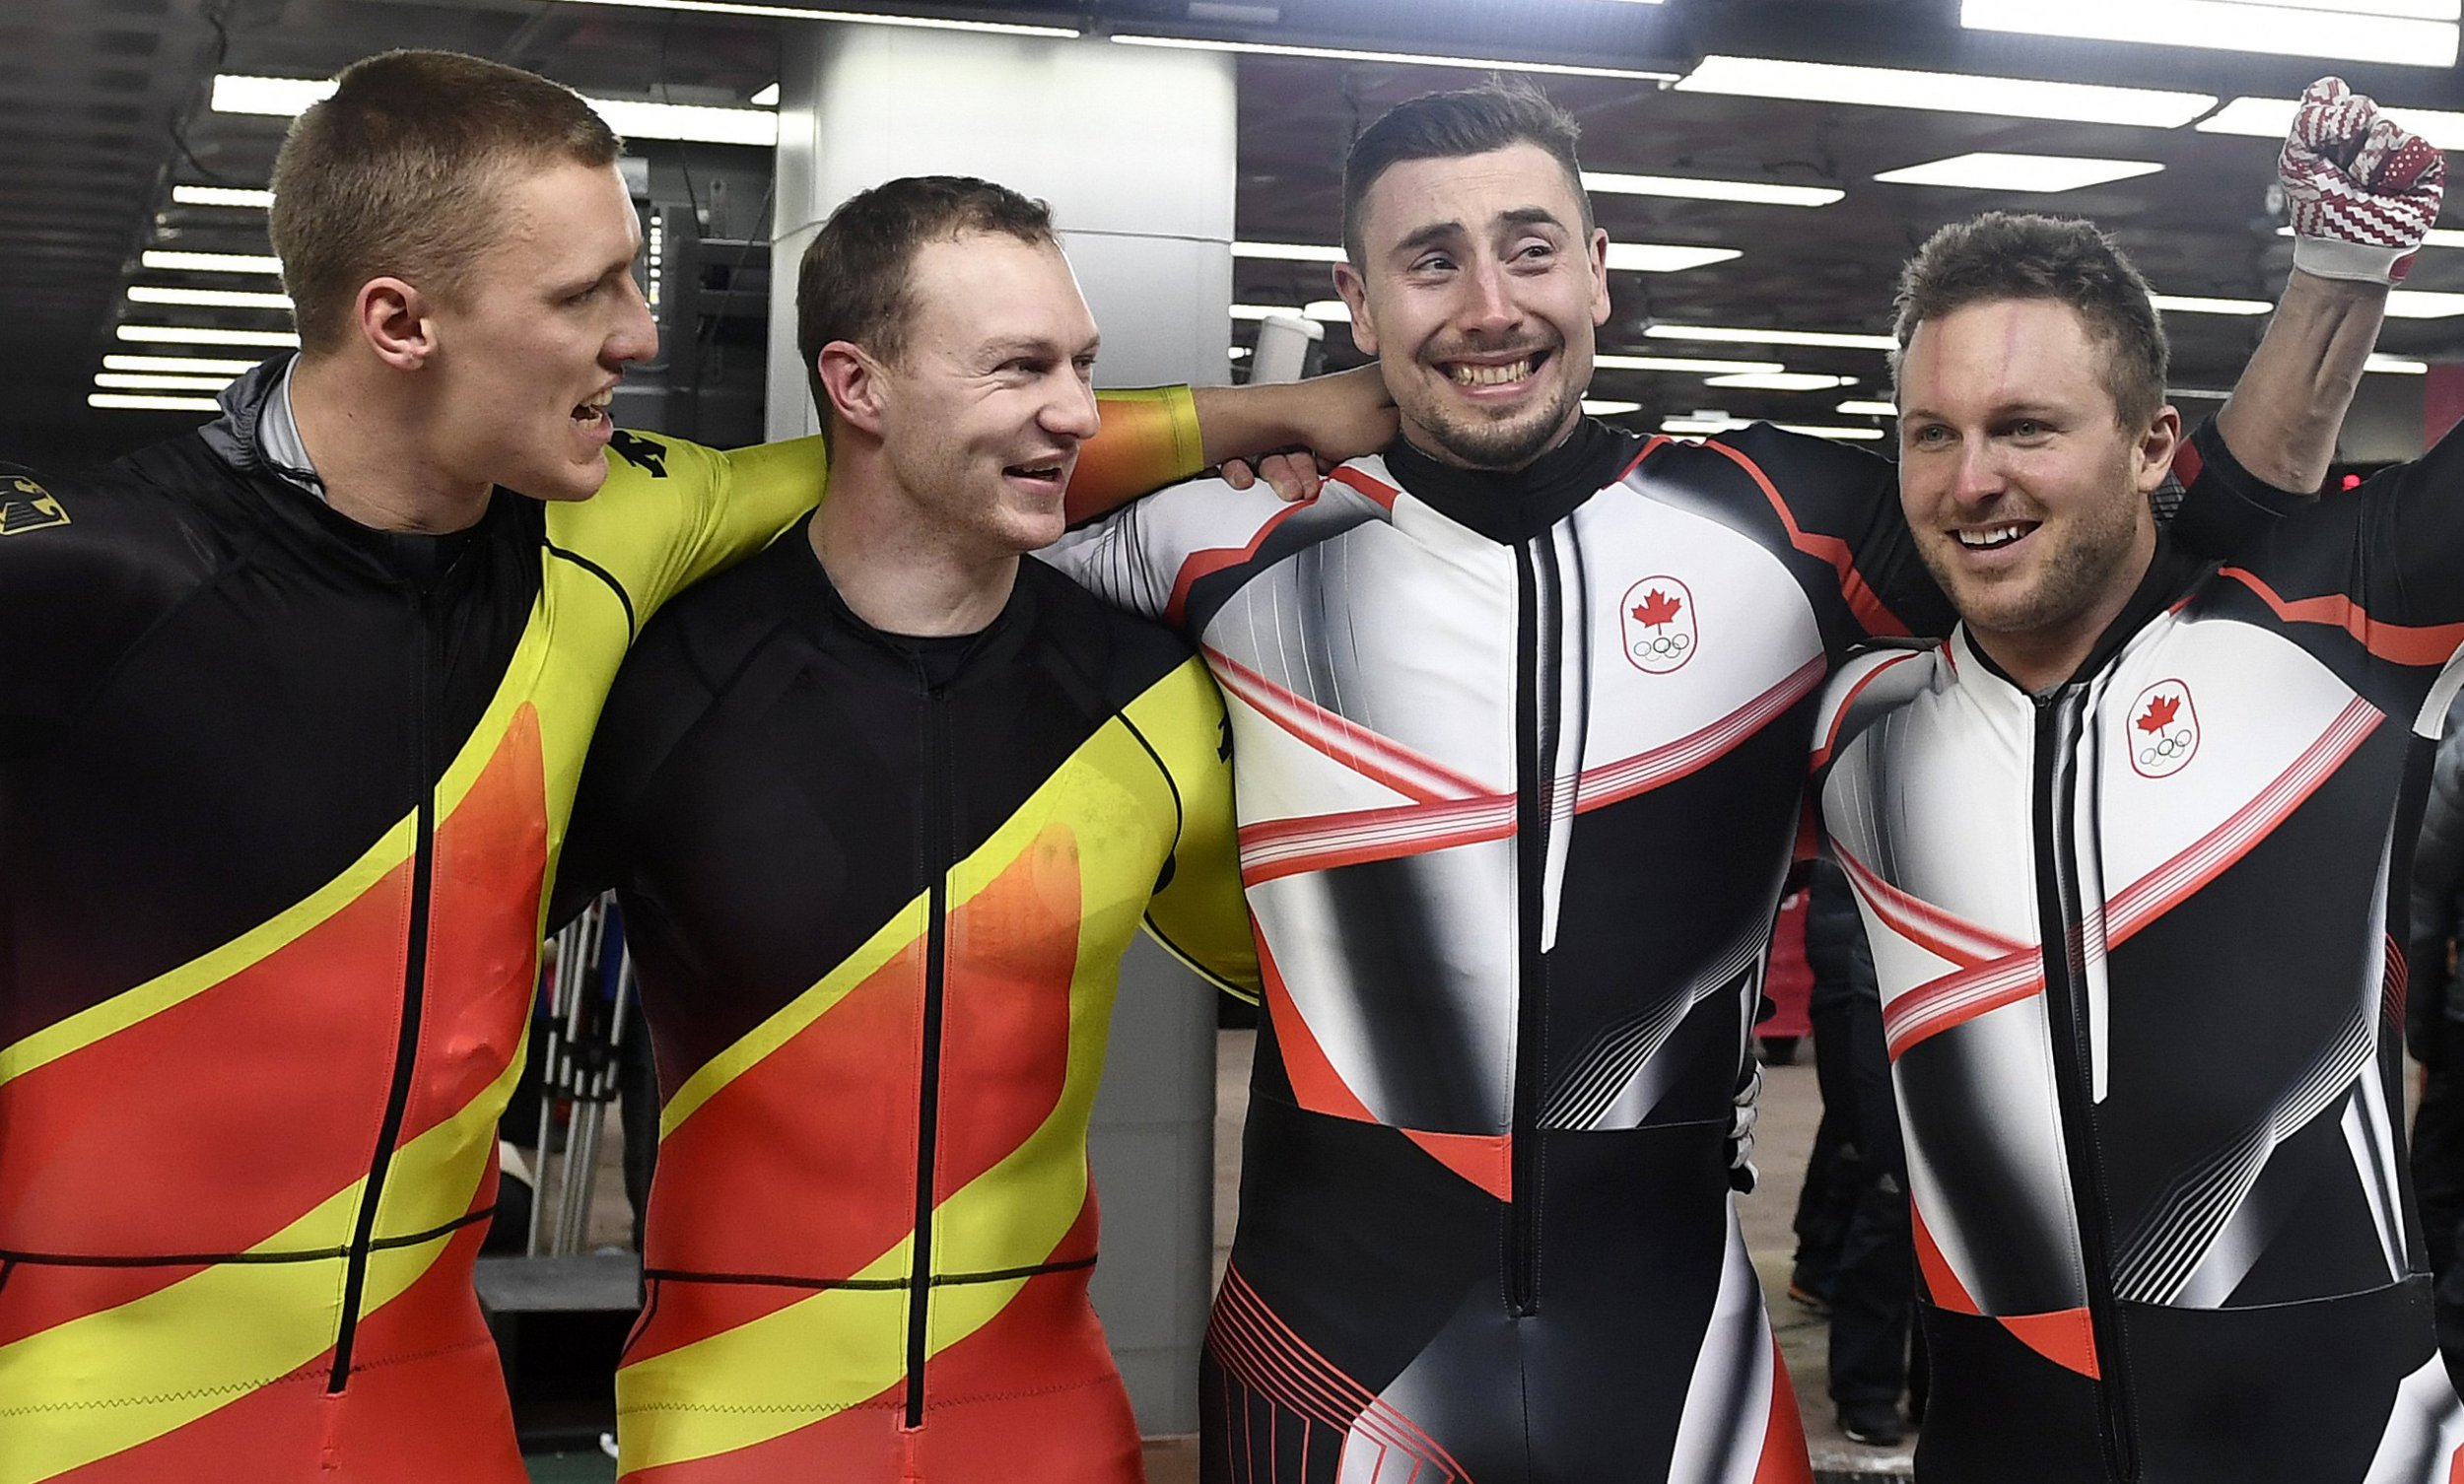 Canada's bobsleigh team thought the Germans were just pleased for them after gold medal dead heat at the Winter Olympics